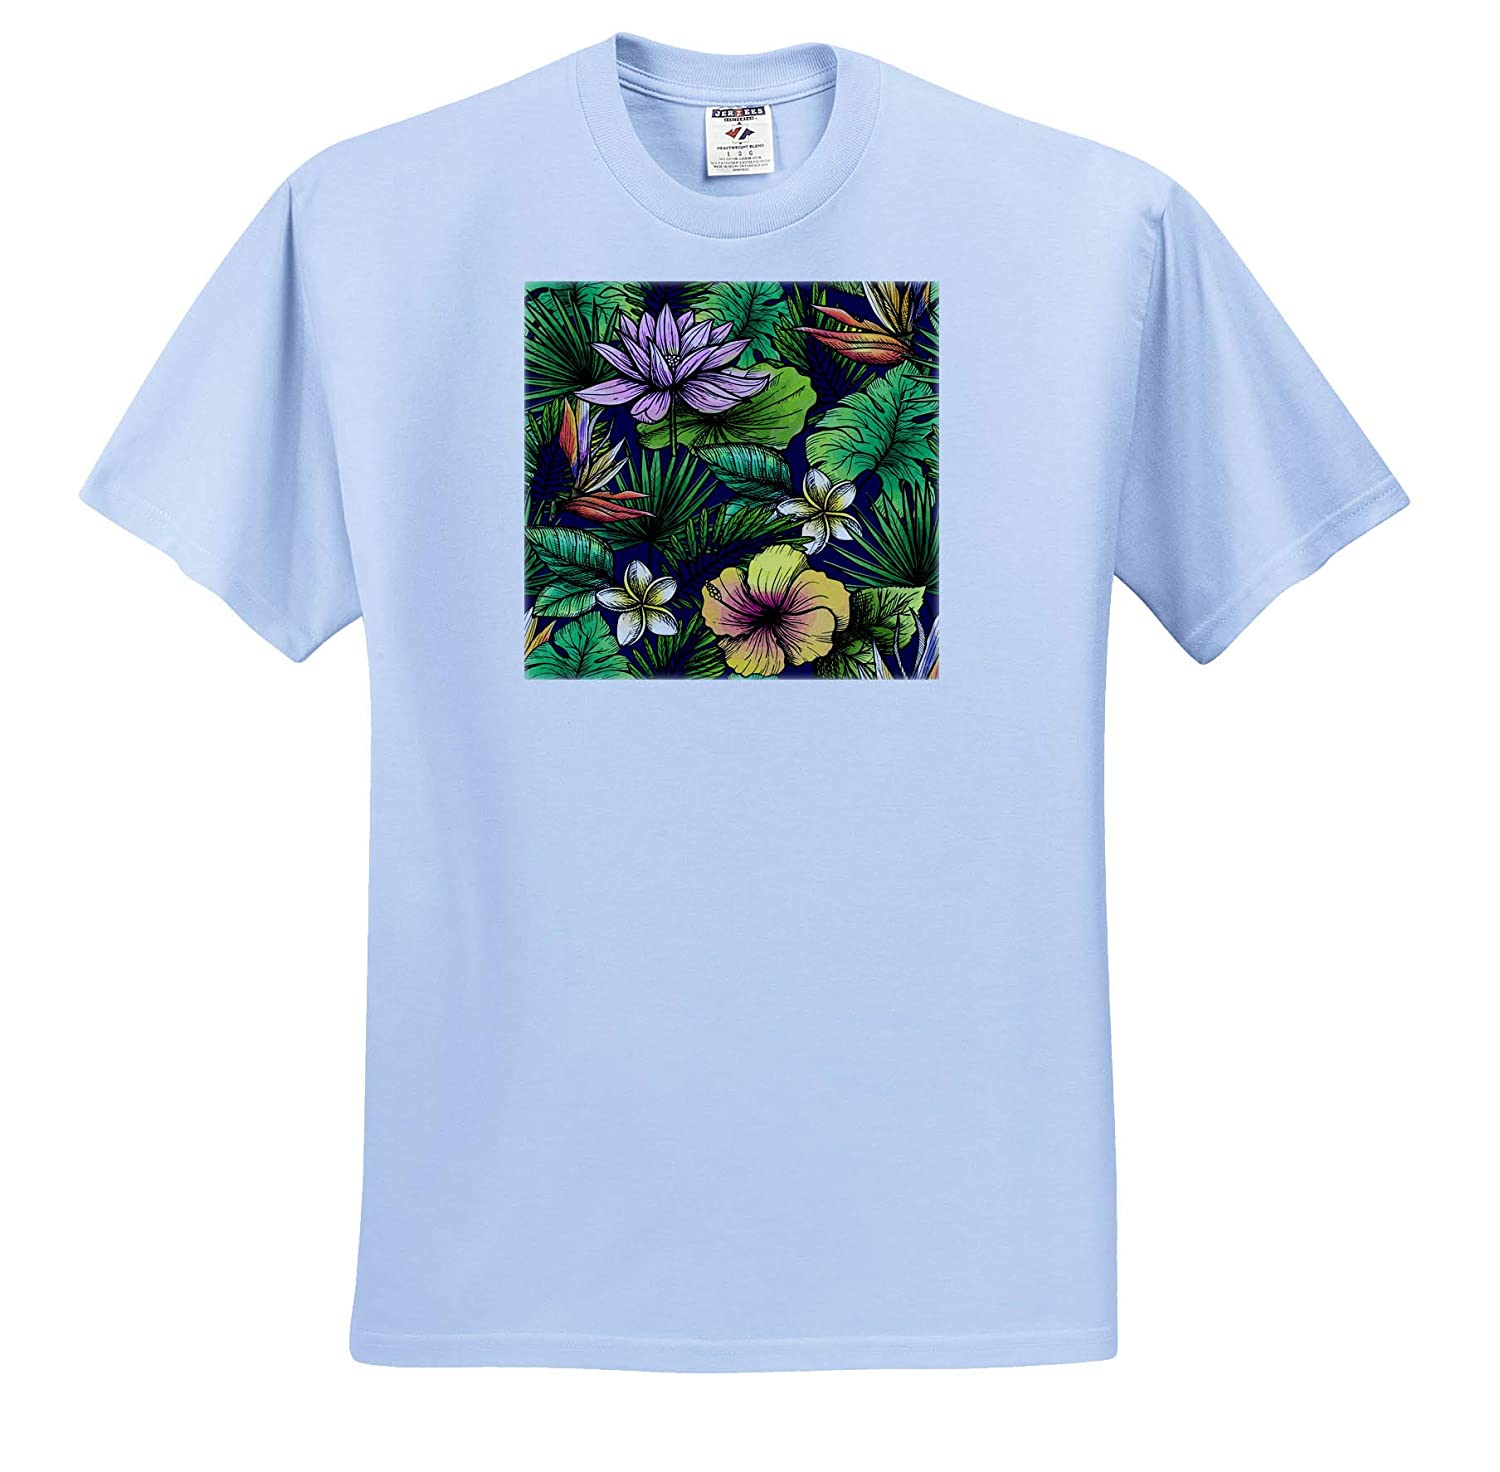 ts/_310973 Retro Vintage Graphic with Jungle and Flowers Adult T-Shirt XL 3dRose Sven Herkenrath Flower